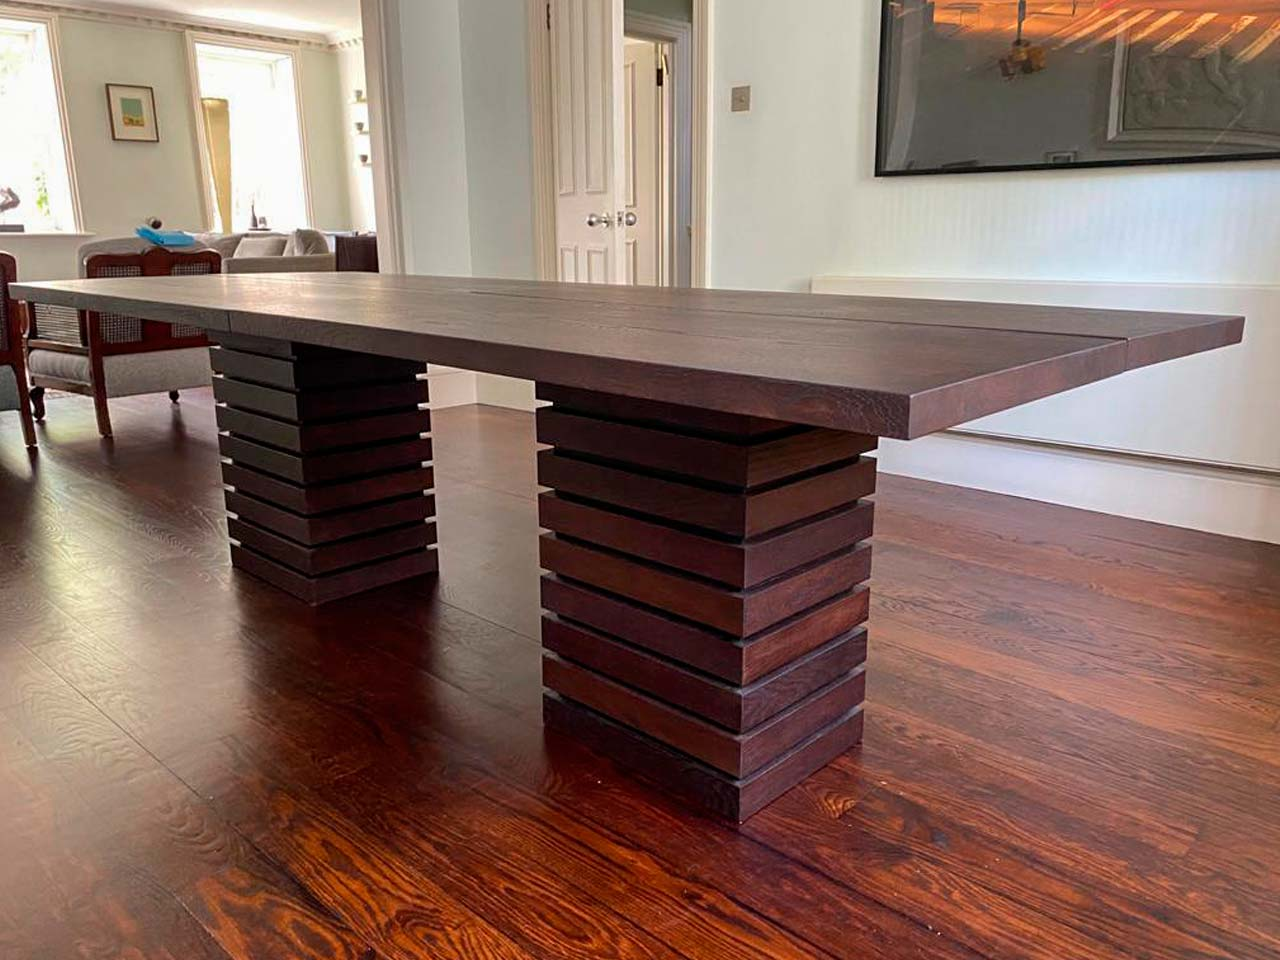 abacus-tables-project-932-pic-1